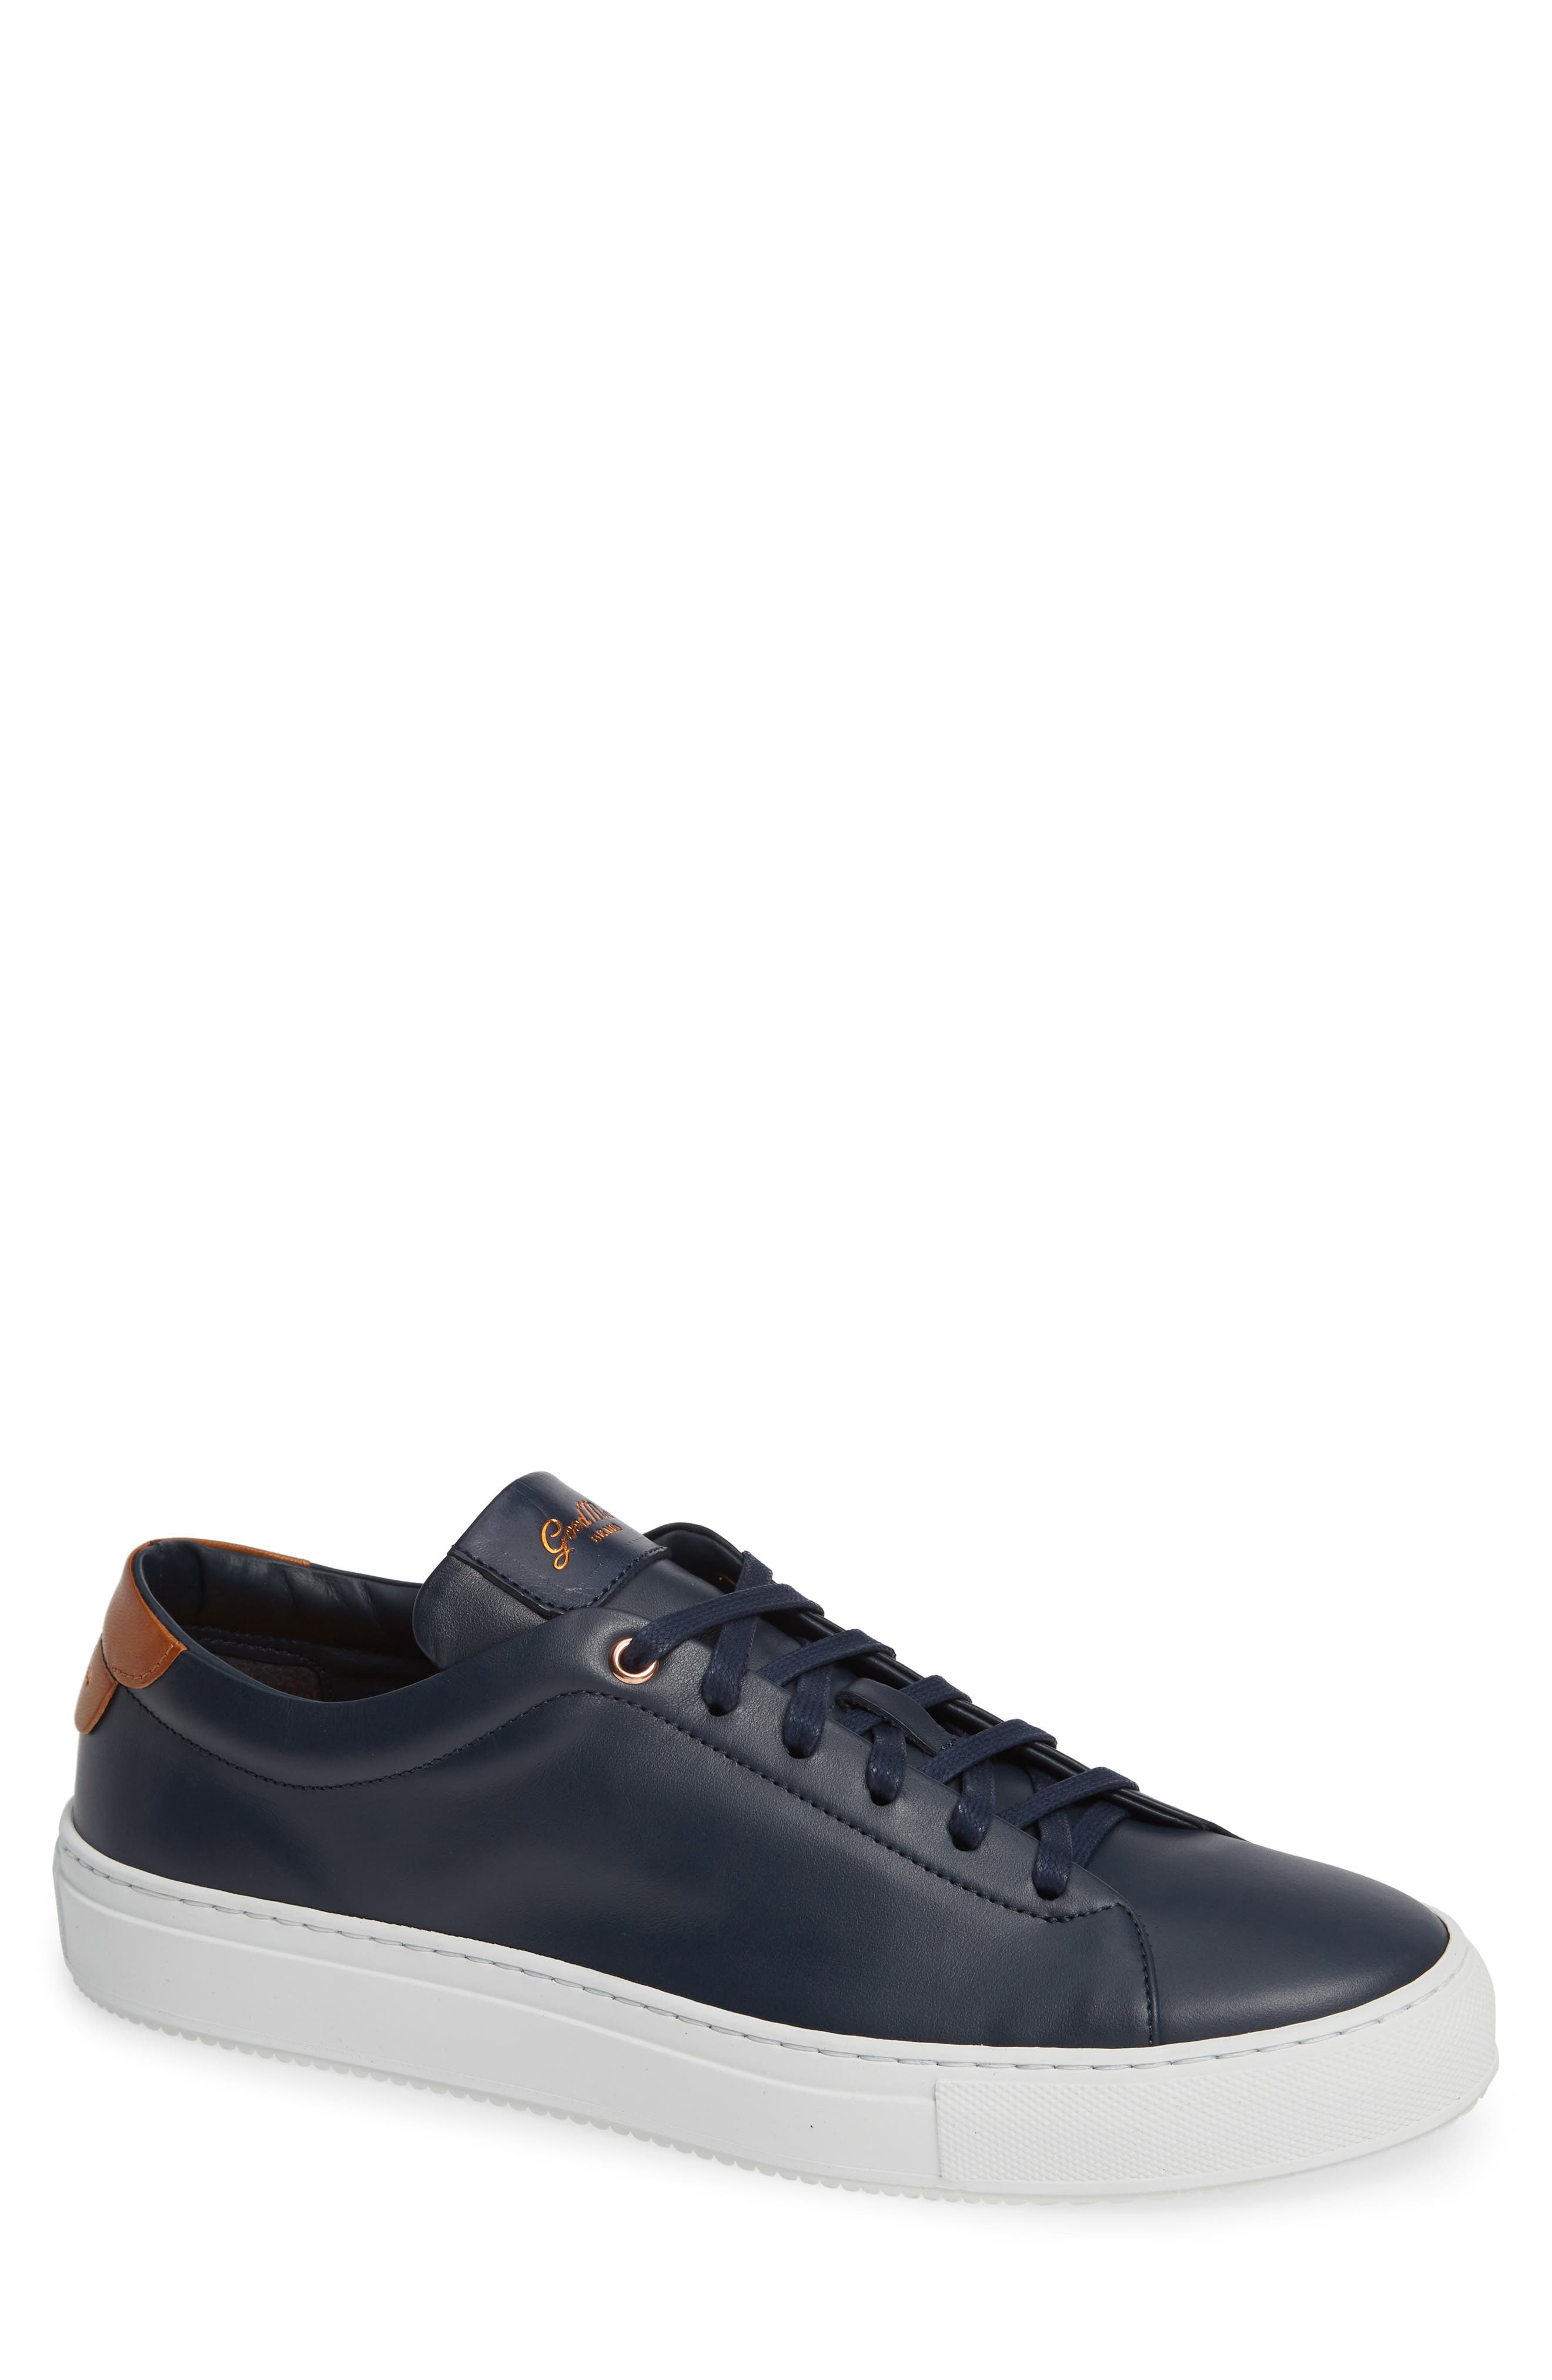 Edge Sneaker,                         Main,                         color, NAVY LEATHER